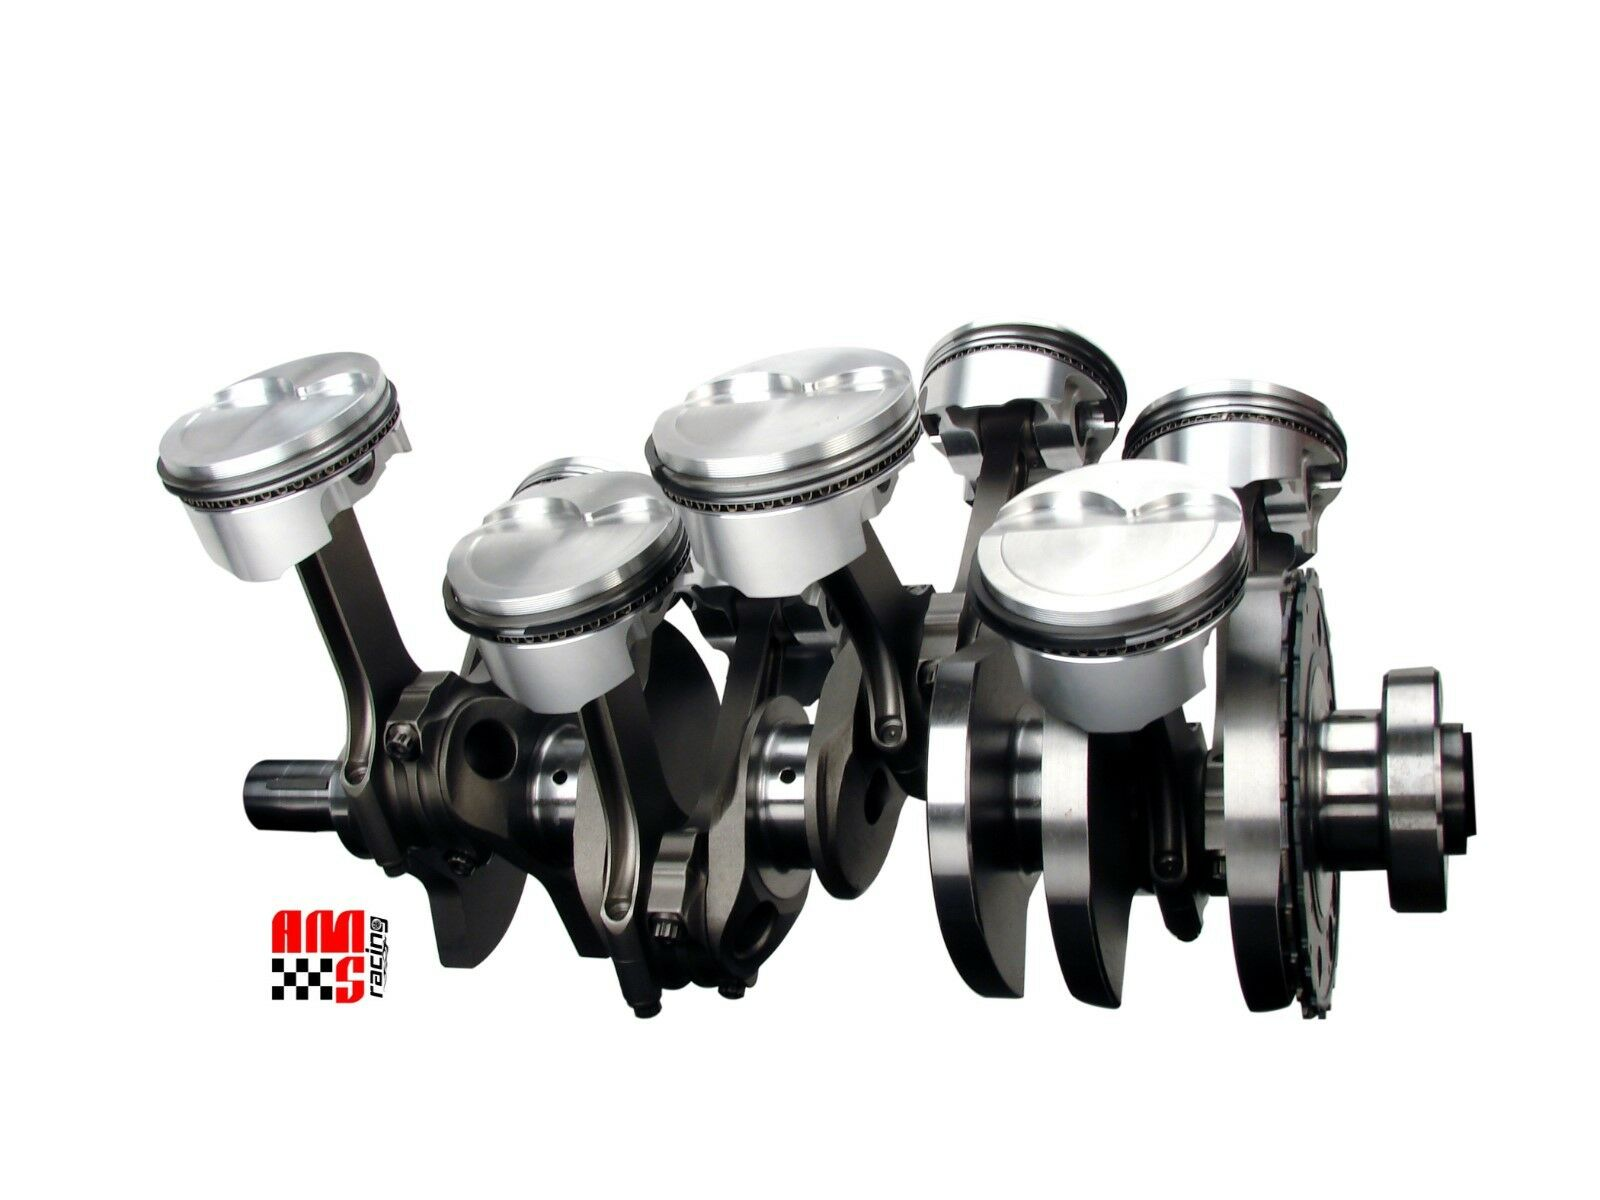 Details about 4340 Forged Stroker Rotating Assembly for Chevrolet 6 0L LQ4  LQ9 DIAMOND K1 SCAT